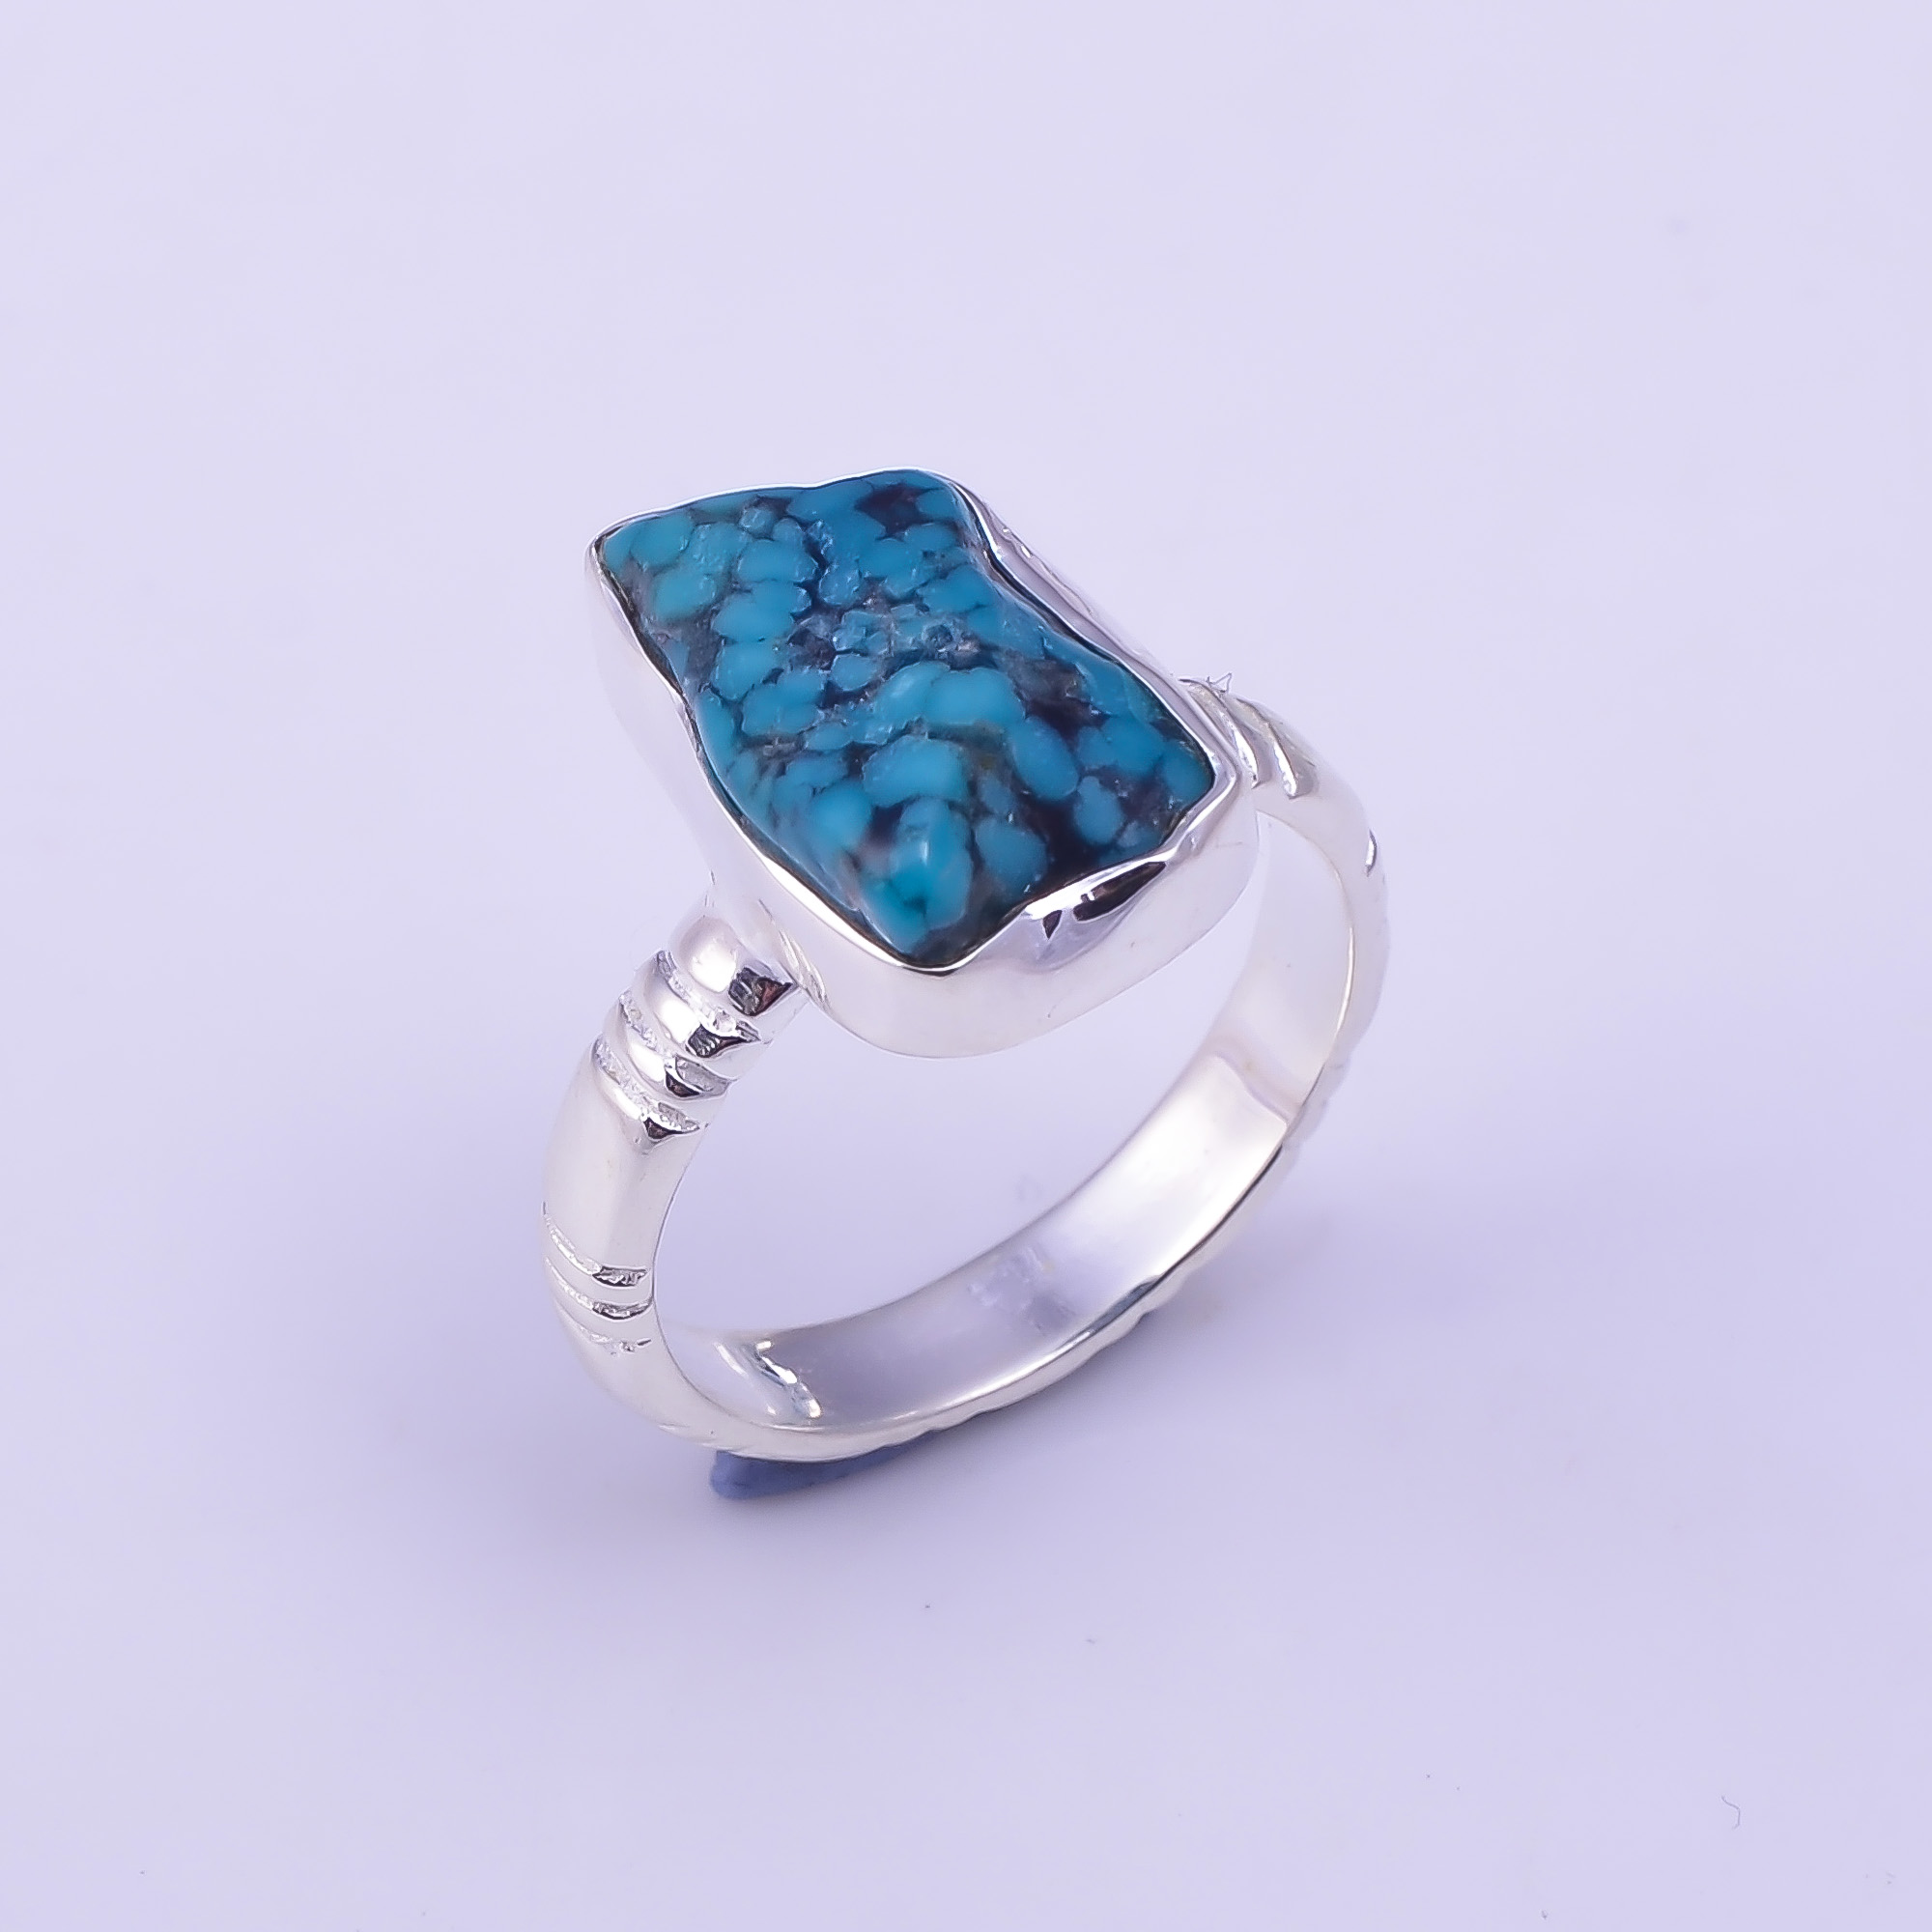 Turquoise Raw Gemstone 925 Sterling Silver Ring Size US 7.5